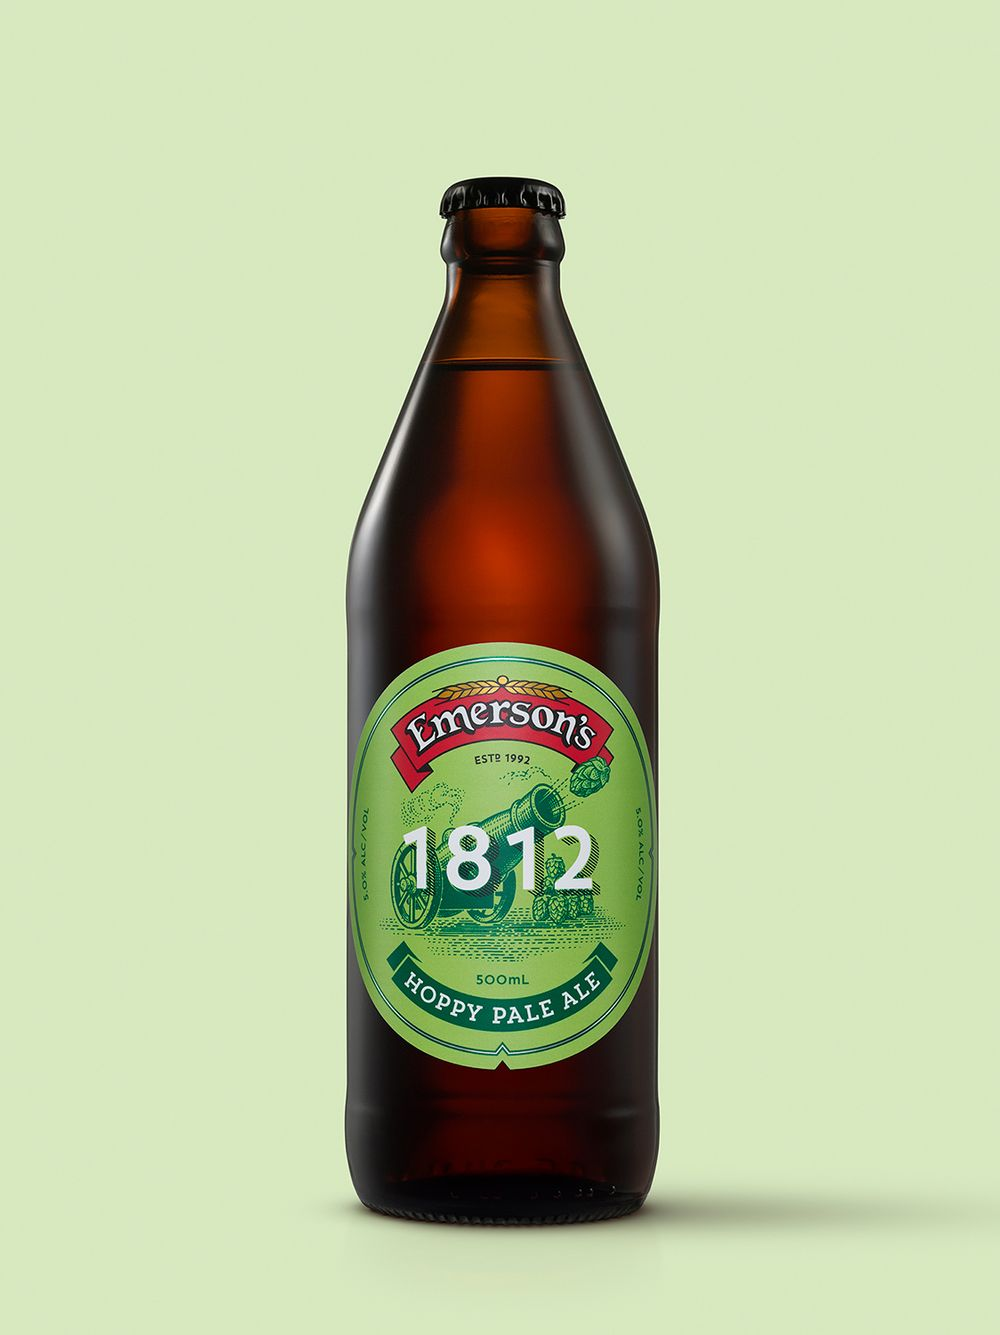 Emersons beer 1812 Hoppy Pale Ale